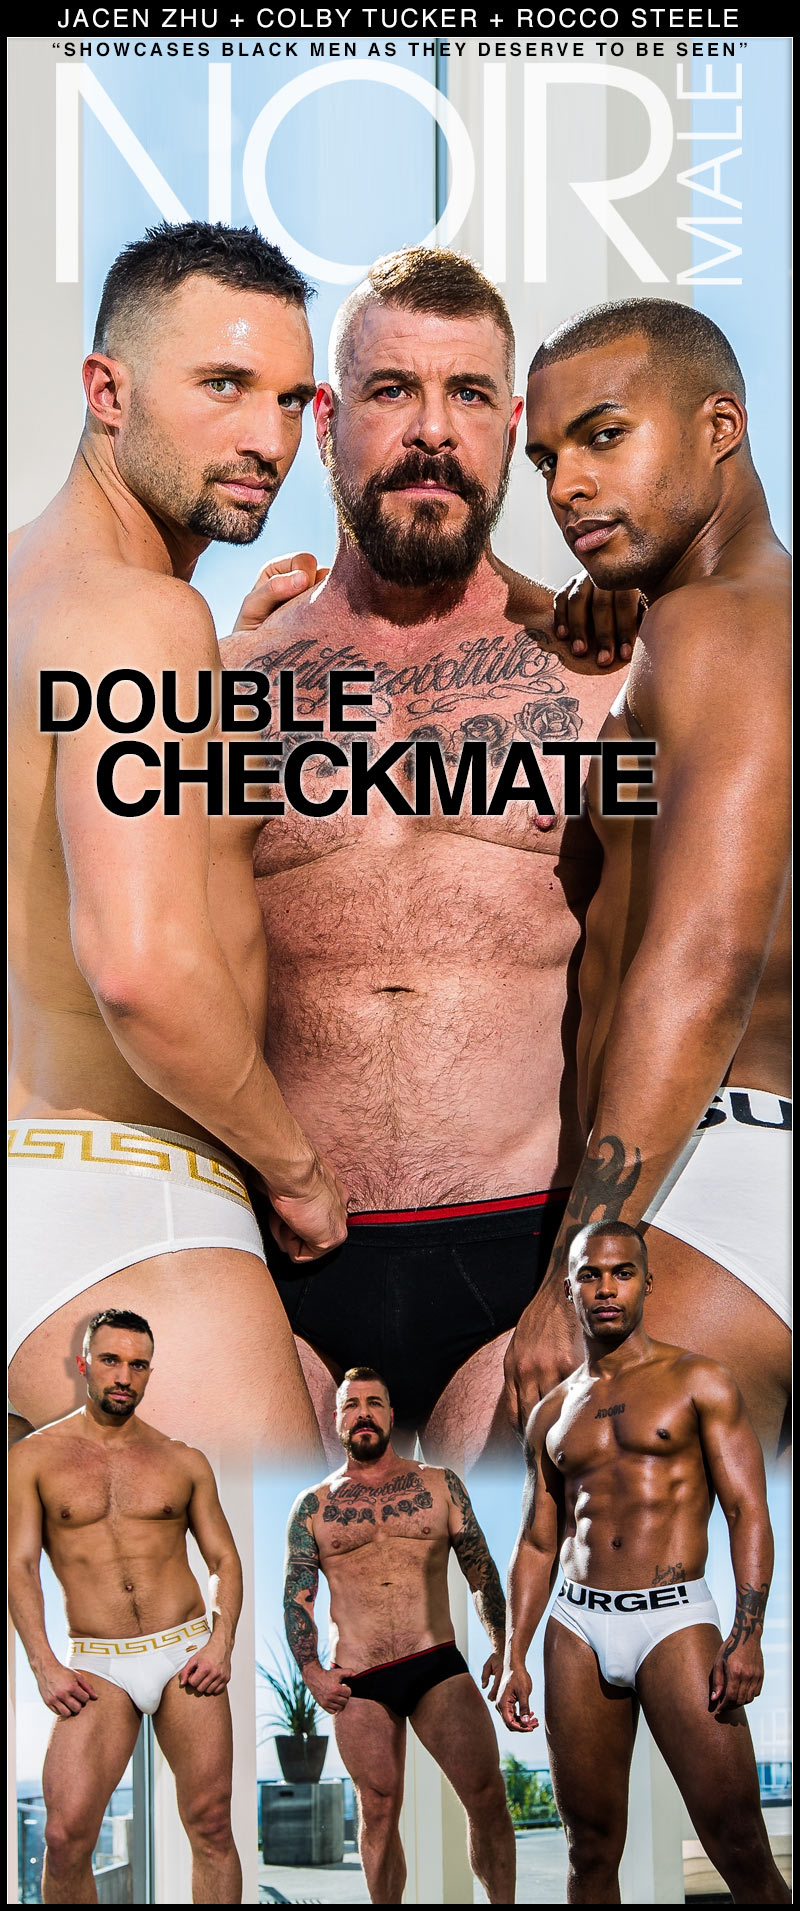 Double Checkmate (Jacen Zhu, Colby Tucker and Rocco Steele) at Noir Male